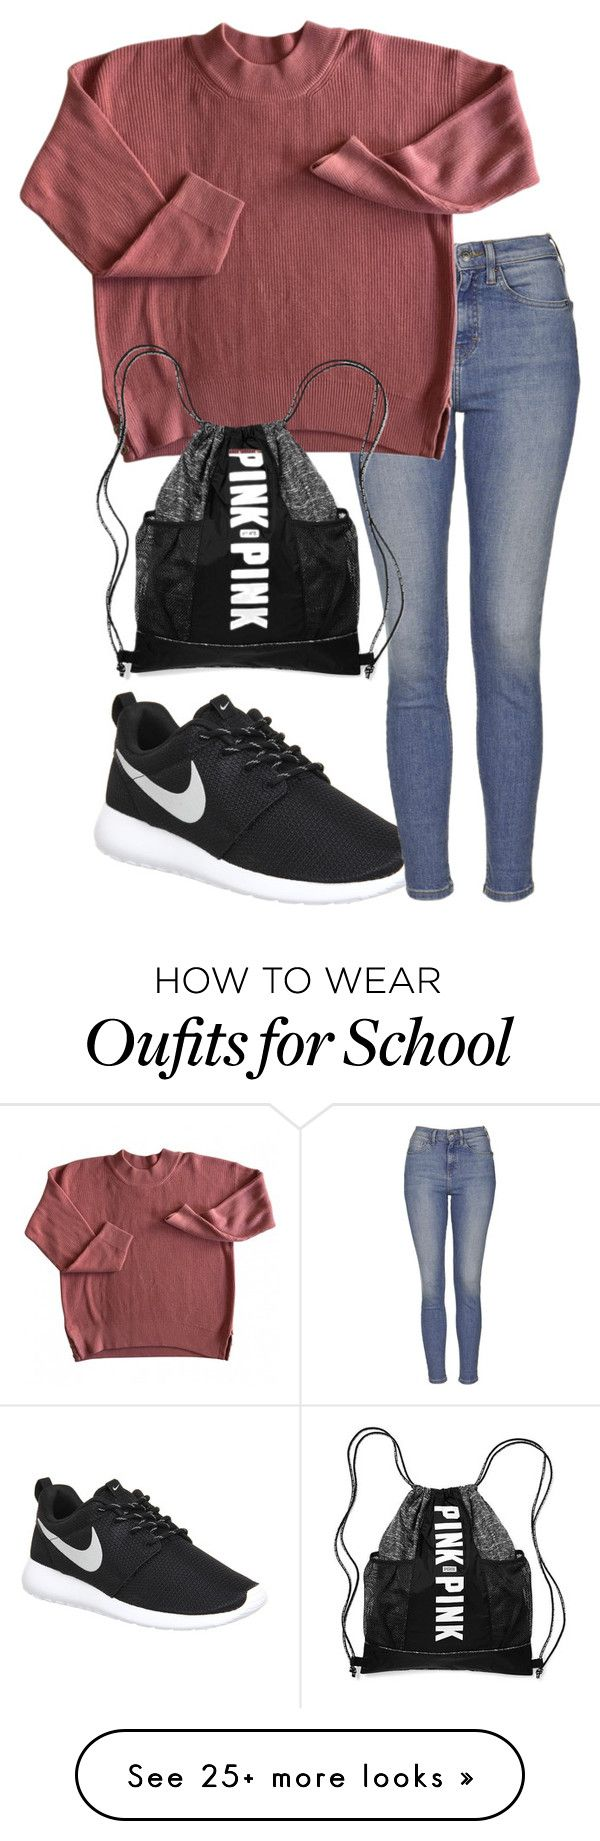 1000+ ideas about Back To School Outfits on Pinterest | School Outfits Outfits and Polyvore